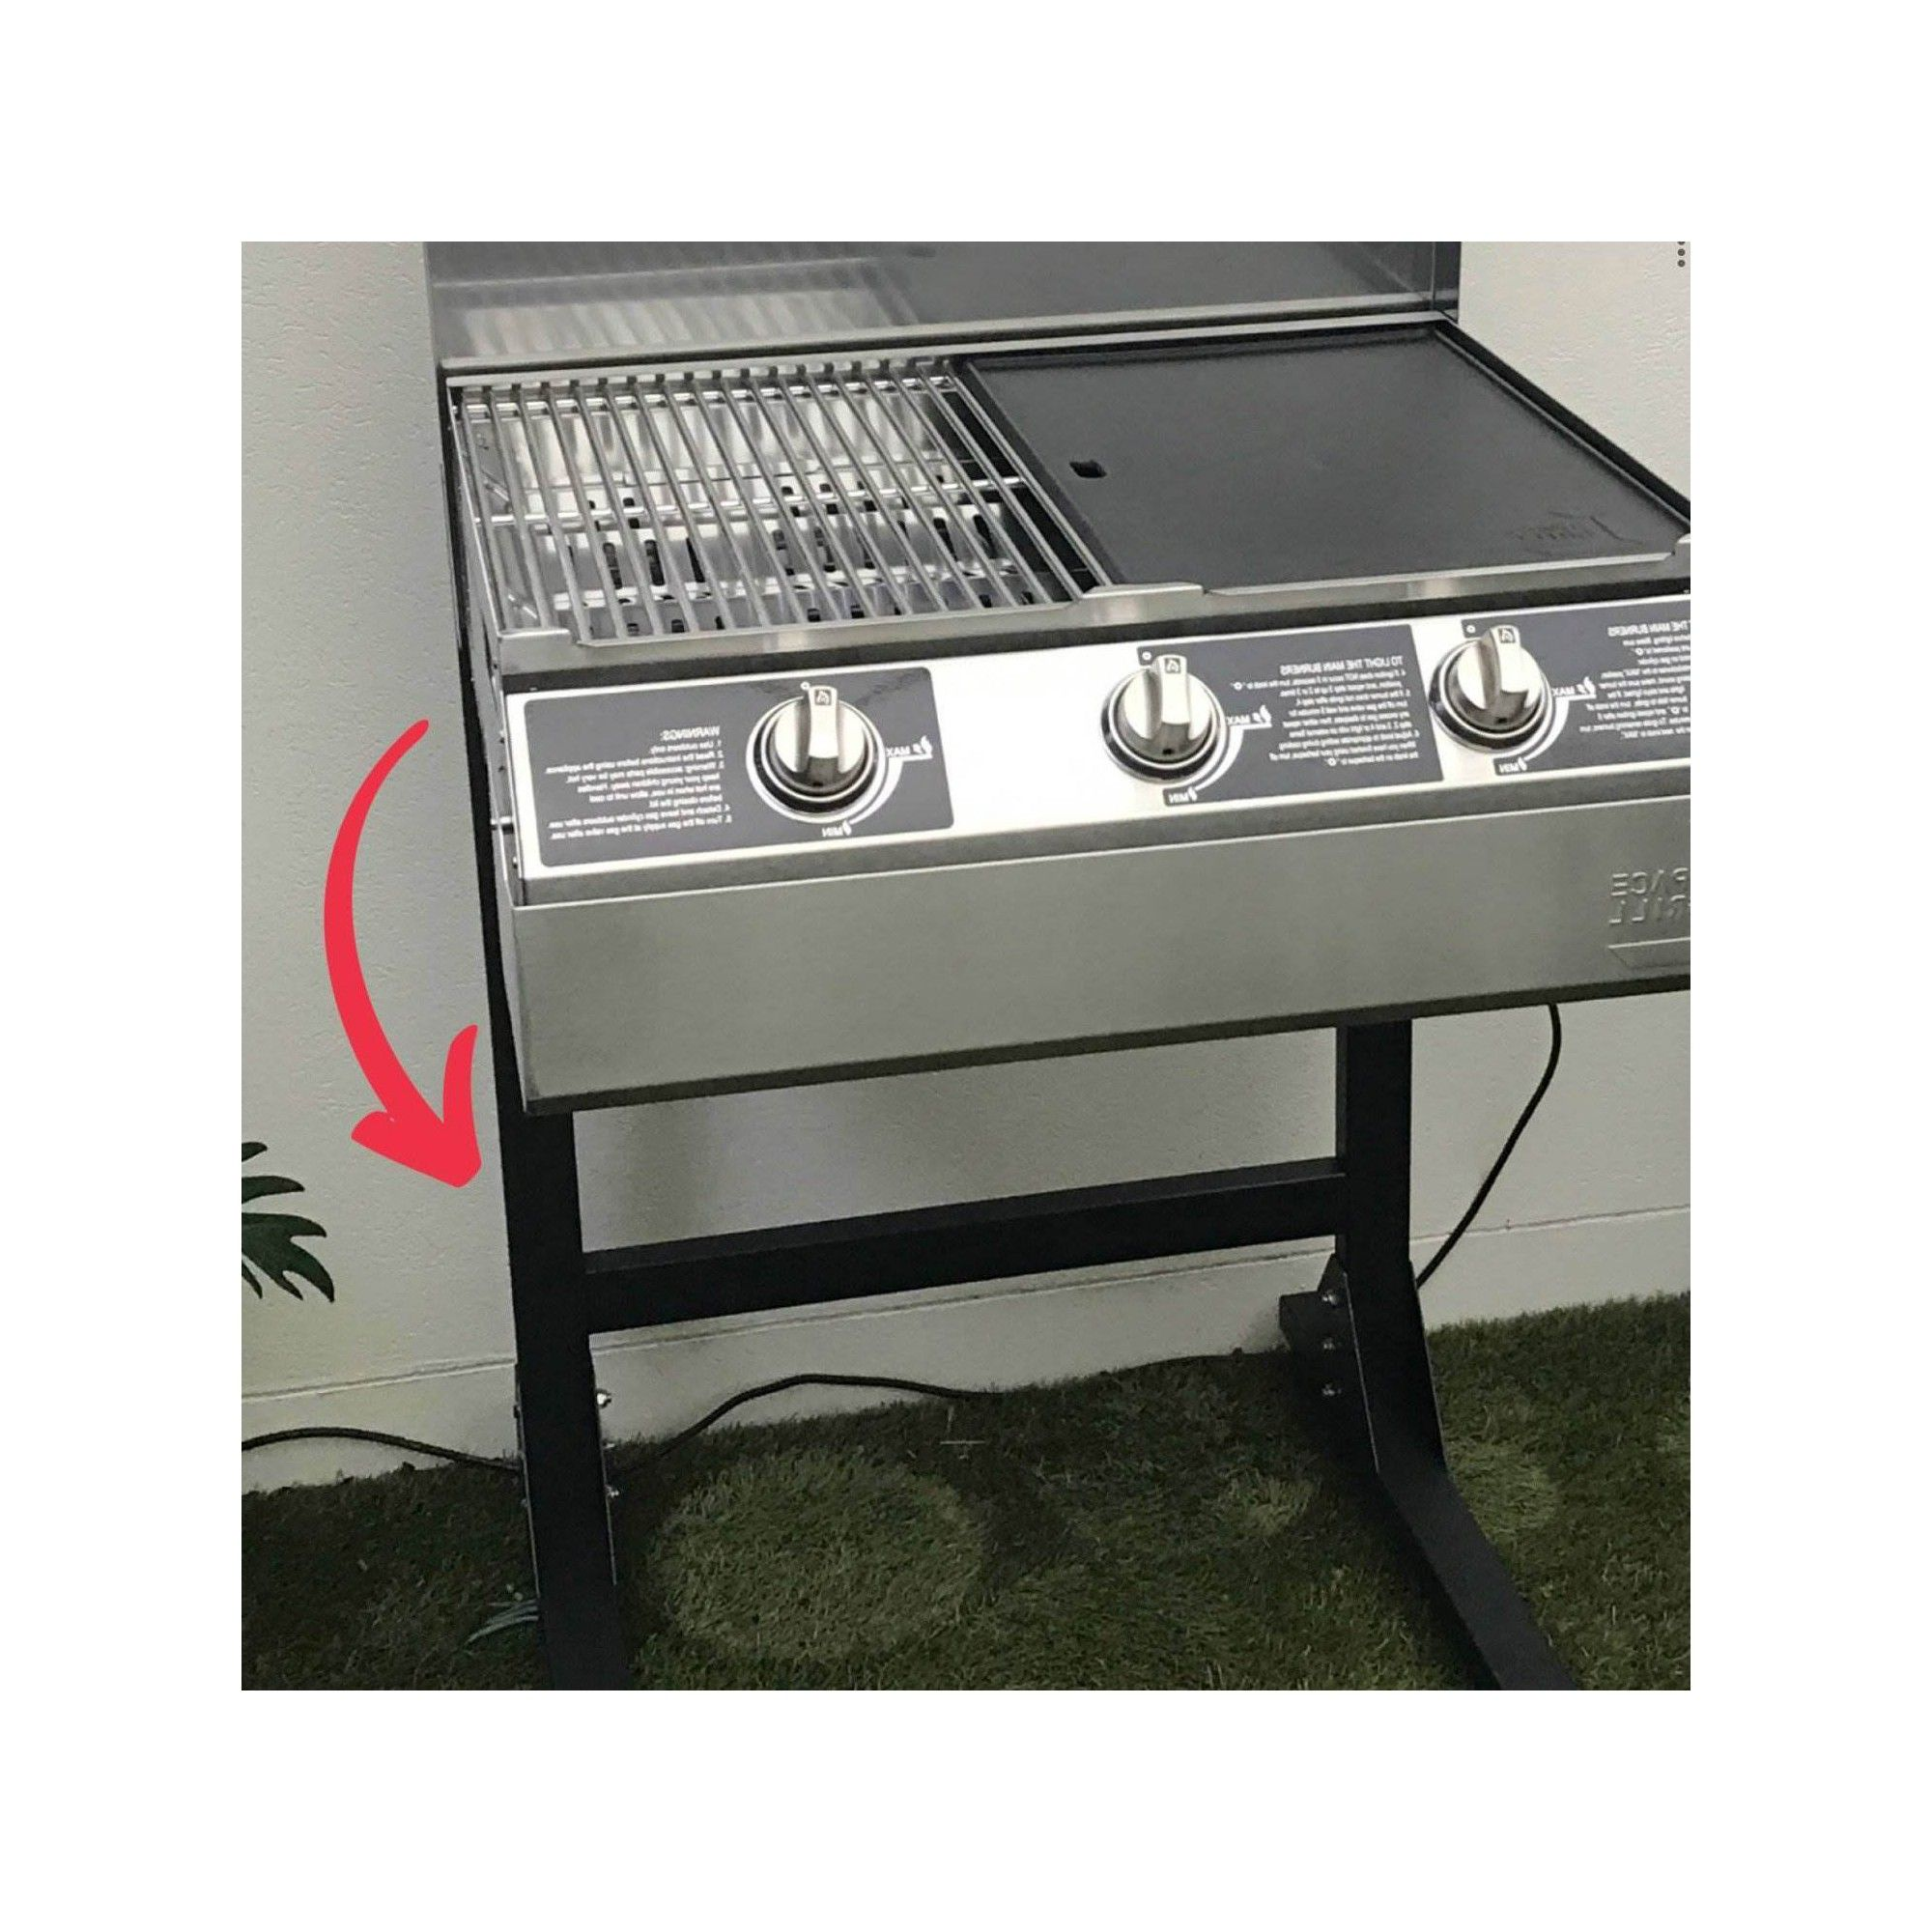 Space Grill Sg Standpb Lightweight Bracketed Outdoor Space Grill Stand Black Grill Stand Grilling Grill Accessories